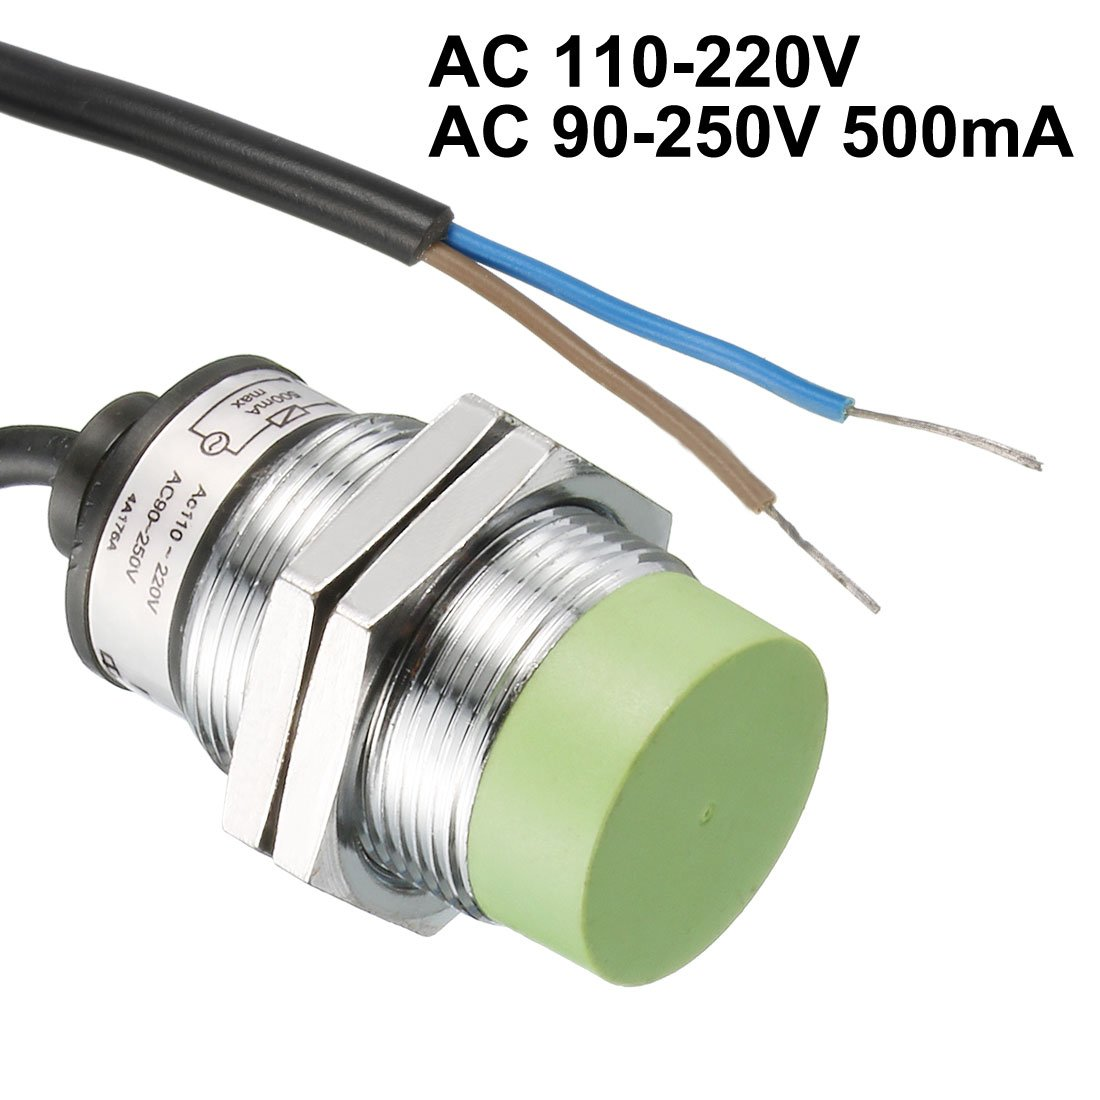 uxcell 1-15mm Inductive Proximity Sensor Switch Detector NO AC 110-220V AC 90-250V 500mA 2-Wire PR30-15AO - - Amazon.com